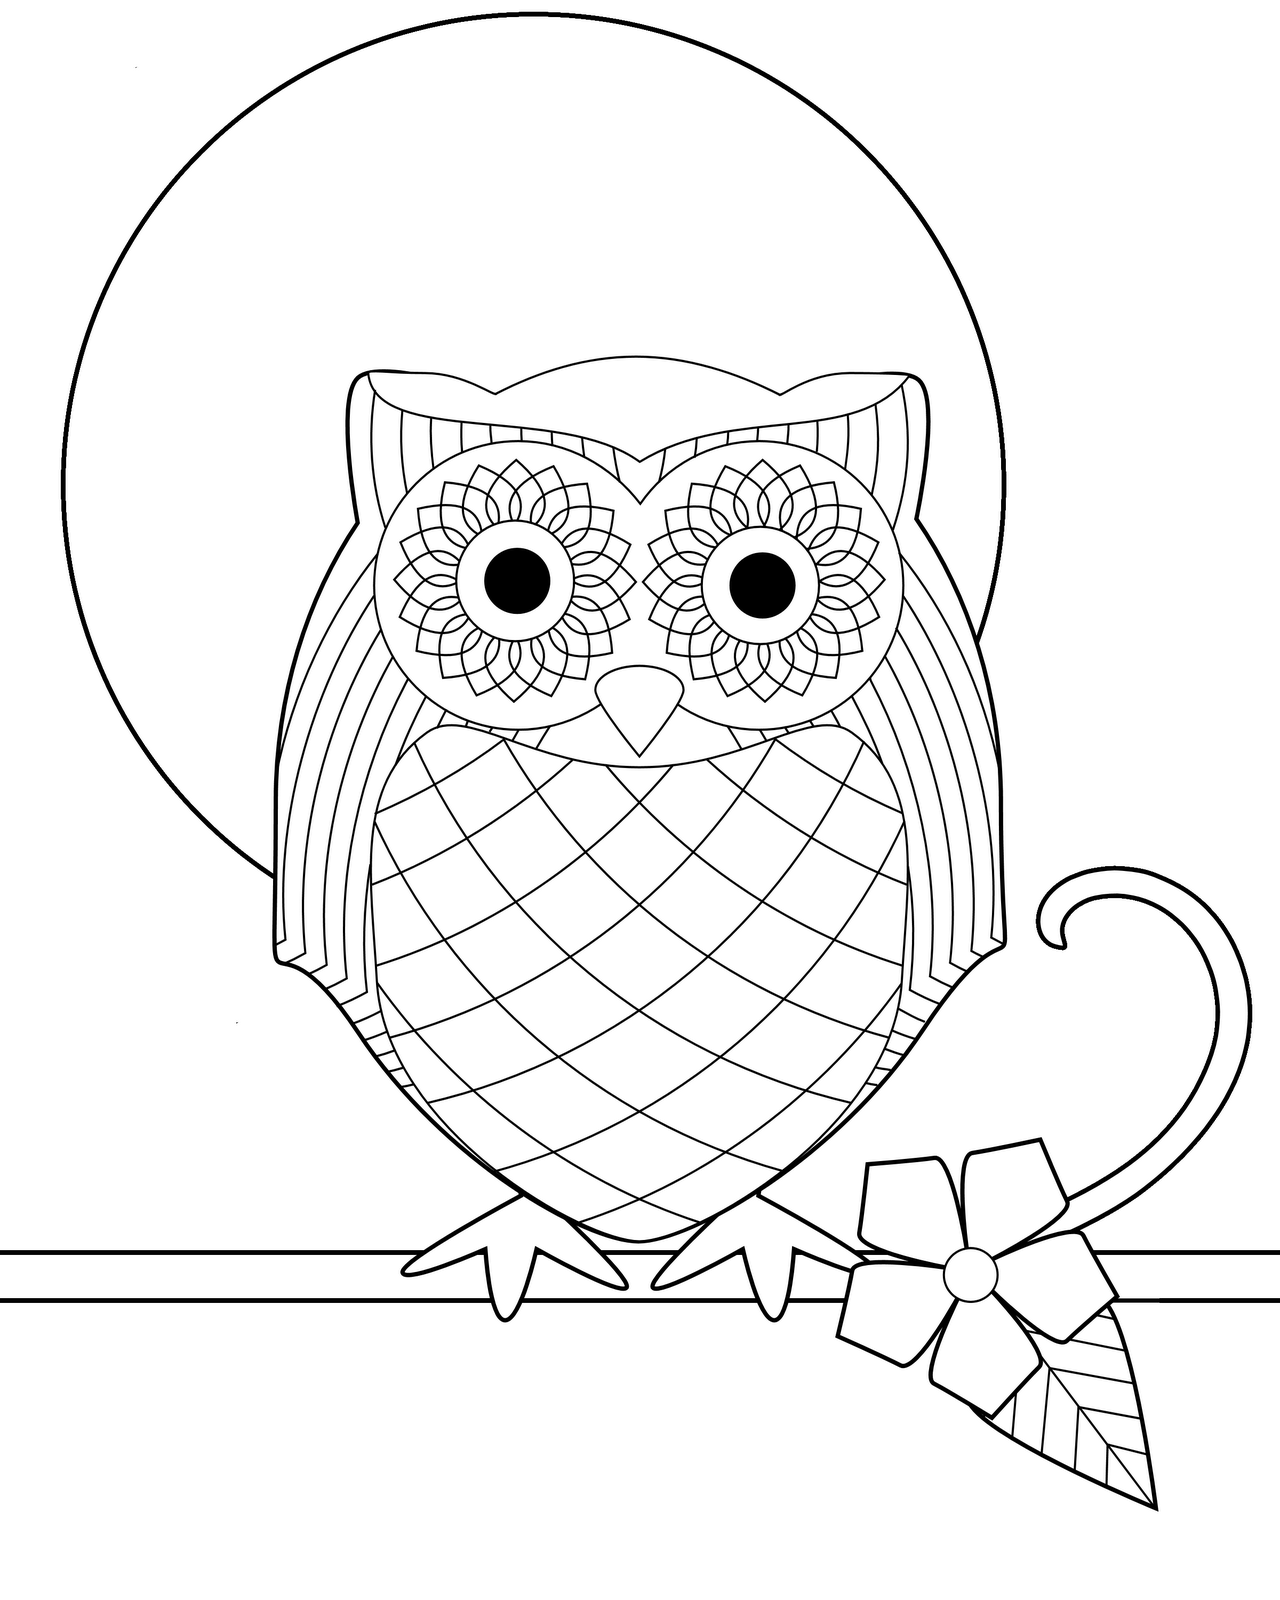 Free Printable Owl Coloring Pages For Kids Coloring Pages For